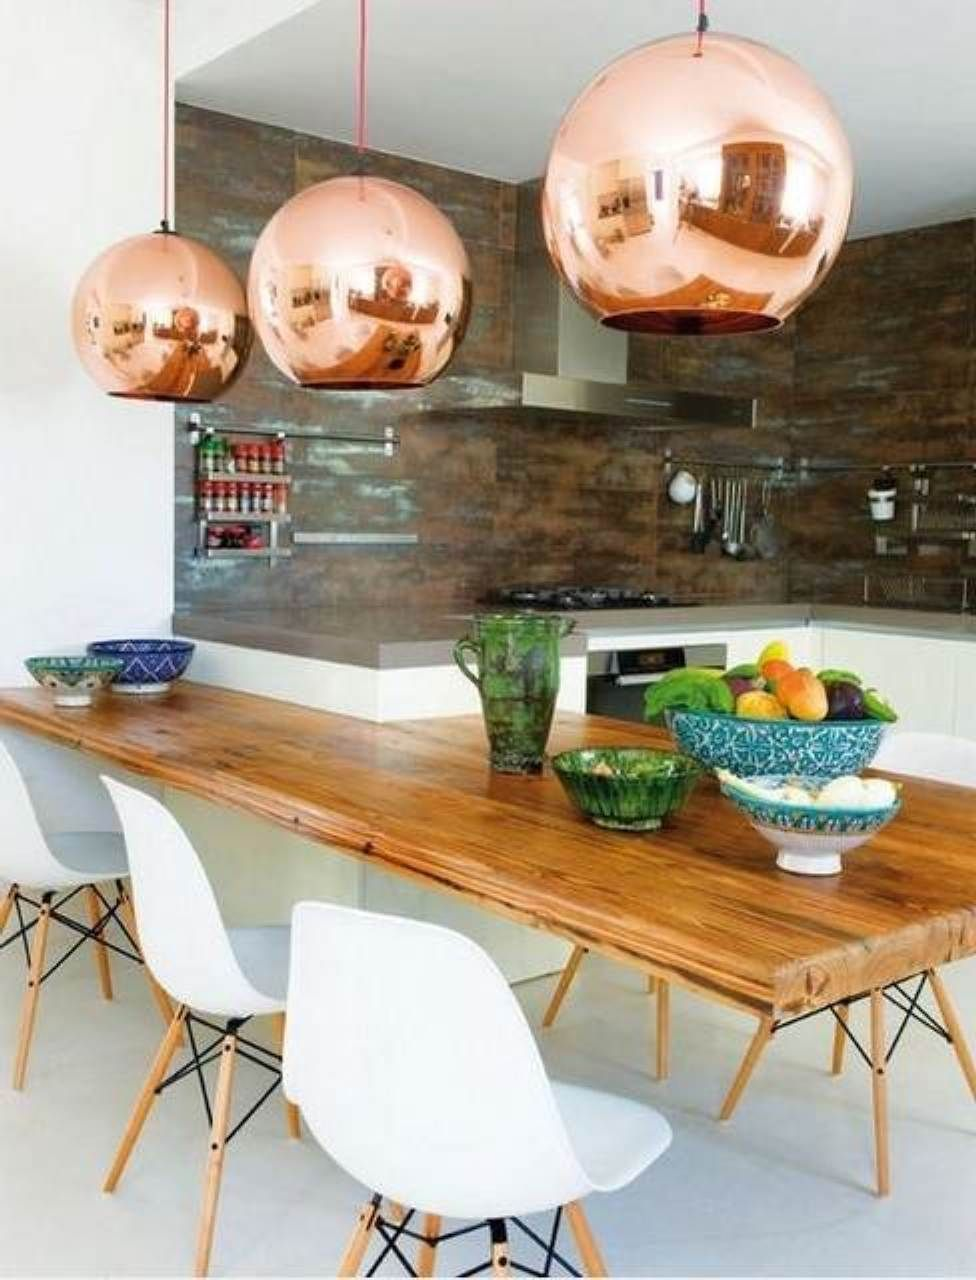 copper kitchen pendant lighting ideas fabulous kitchen pendant rh pinterest com Copper Lamp Shade Copper Lamp Shade